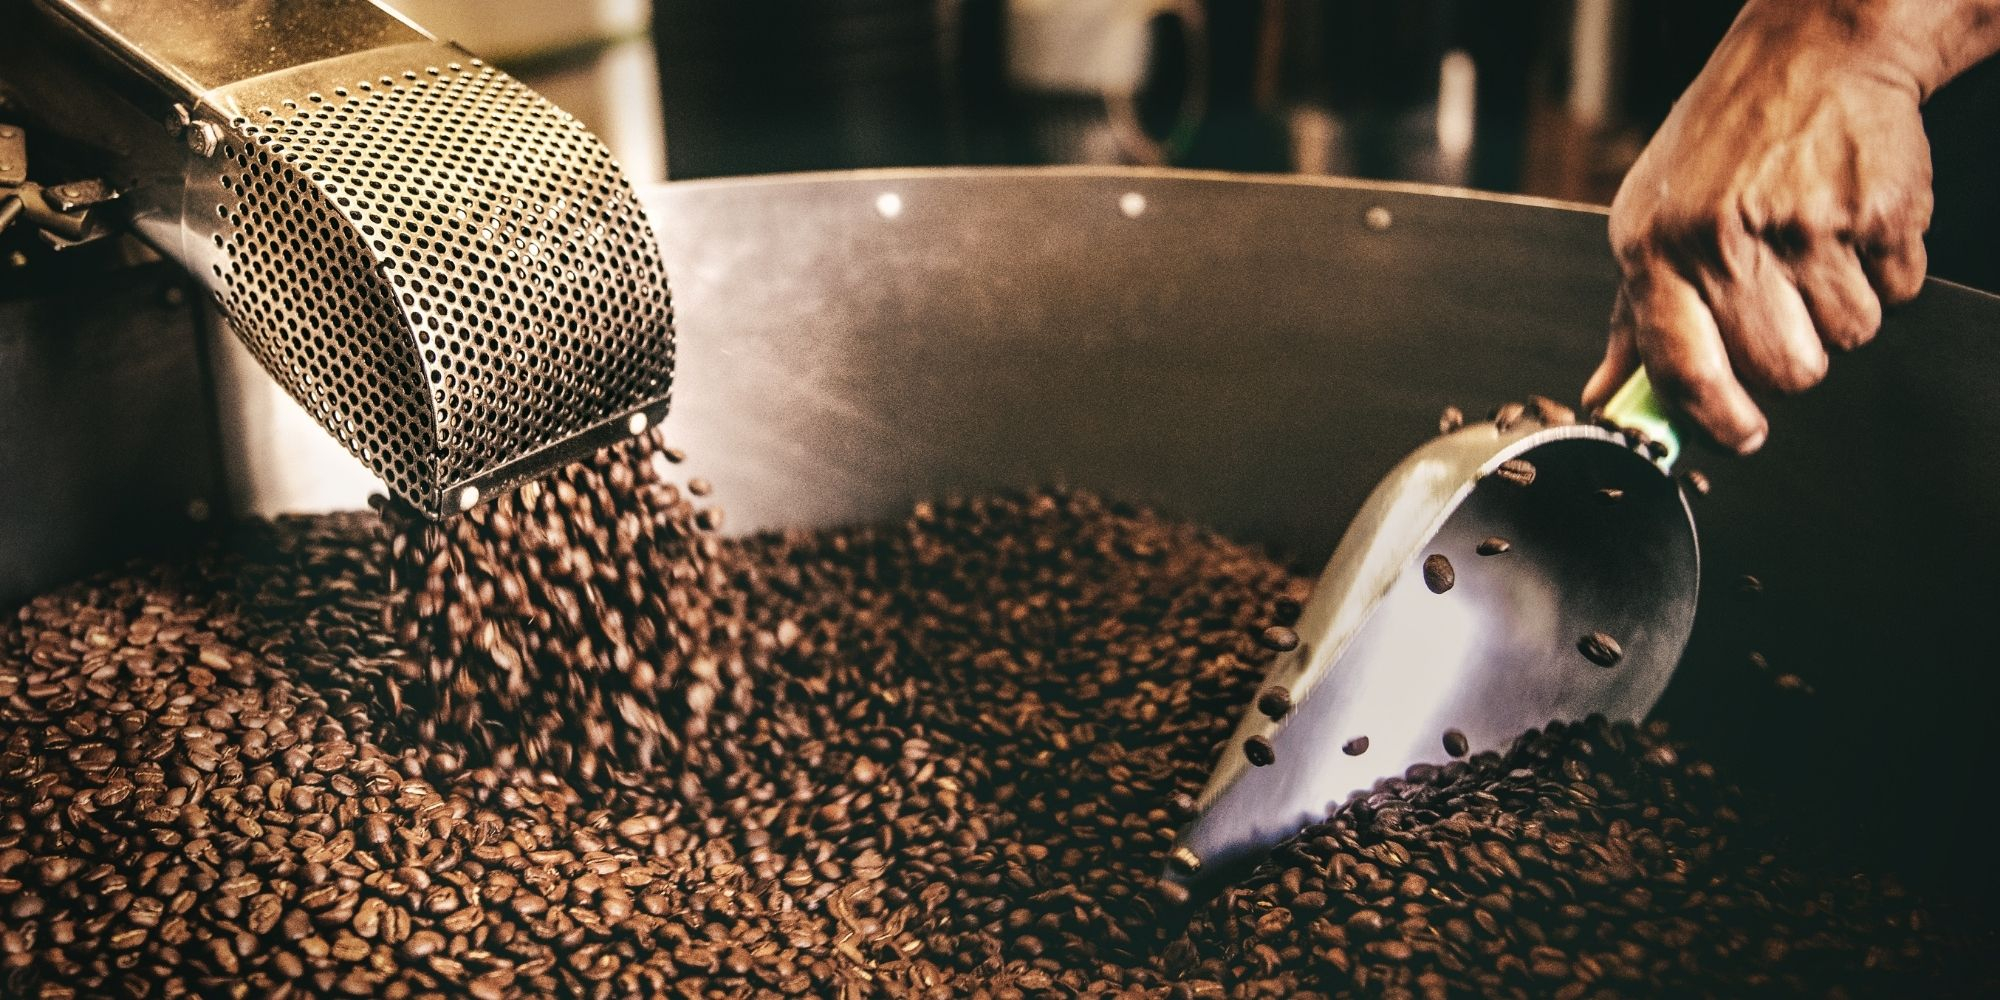 How Do Coffee Beans Get Their Flavour